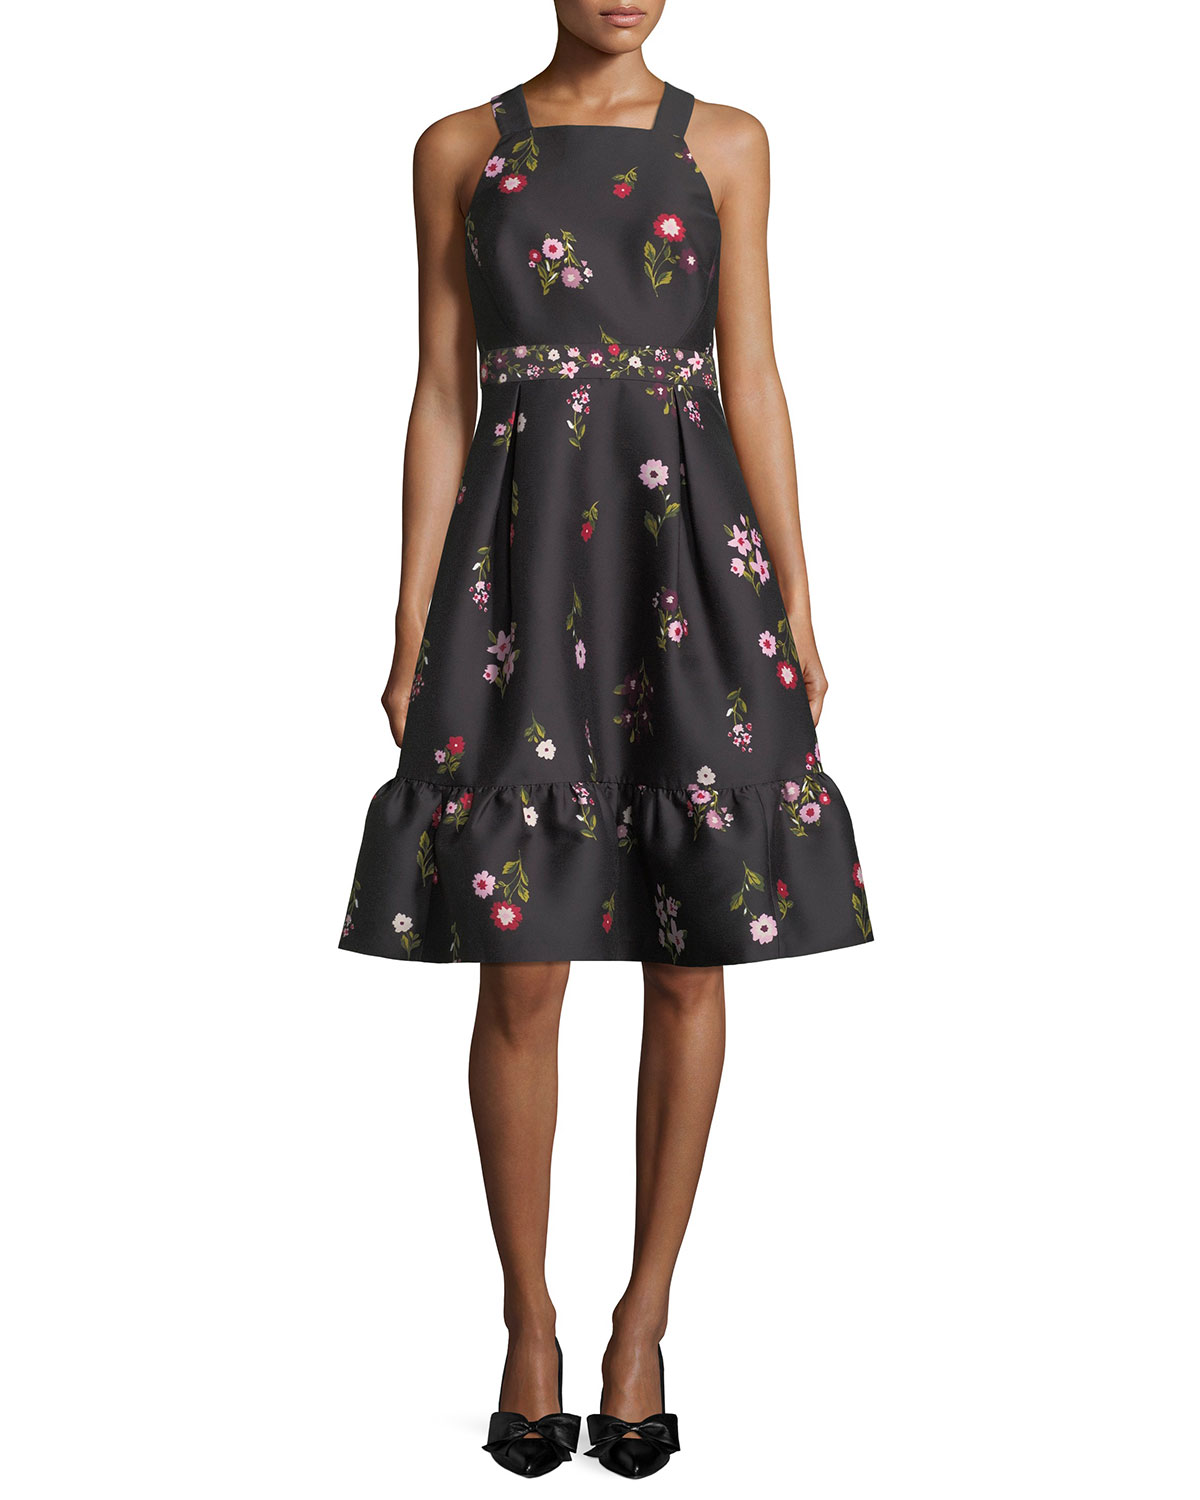 in-bloom fit-and-flare sleeveless dress